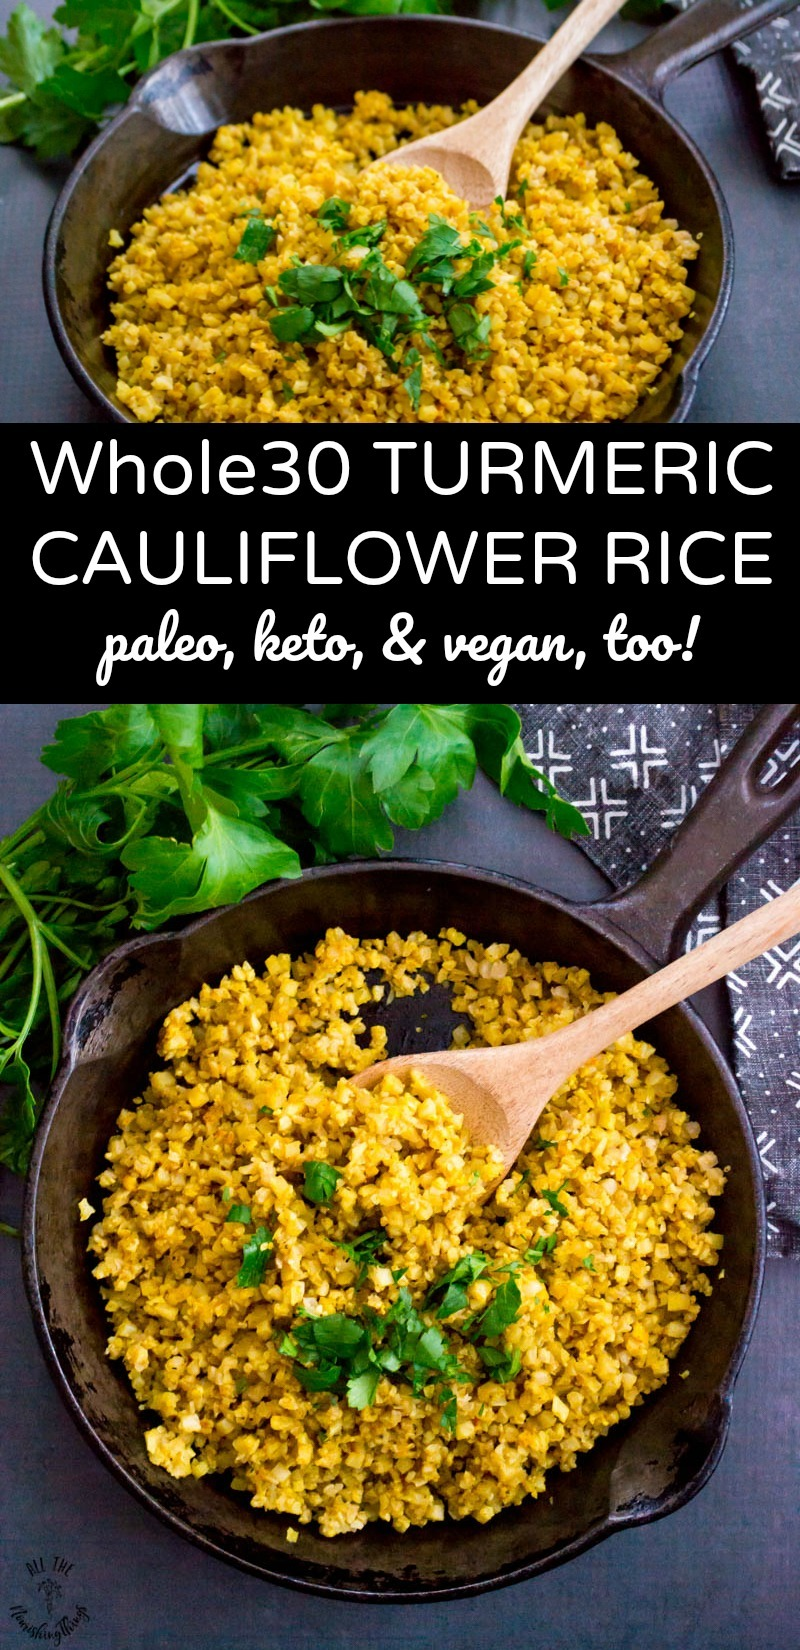 collage of 2 images of turmeric cauliflower rice in cast iron skillet with wooden spoon and a text overlay